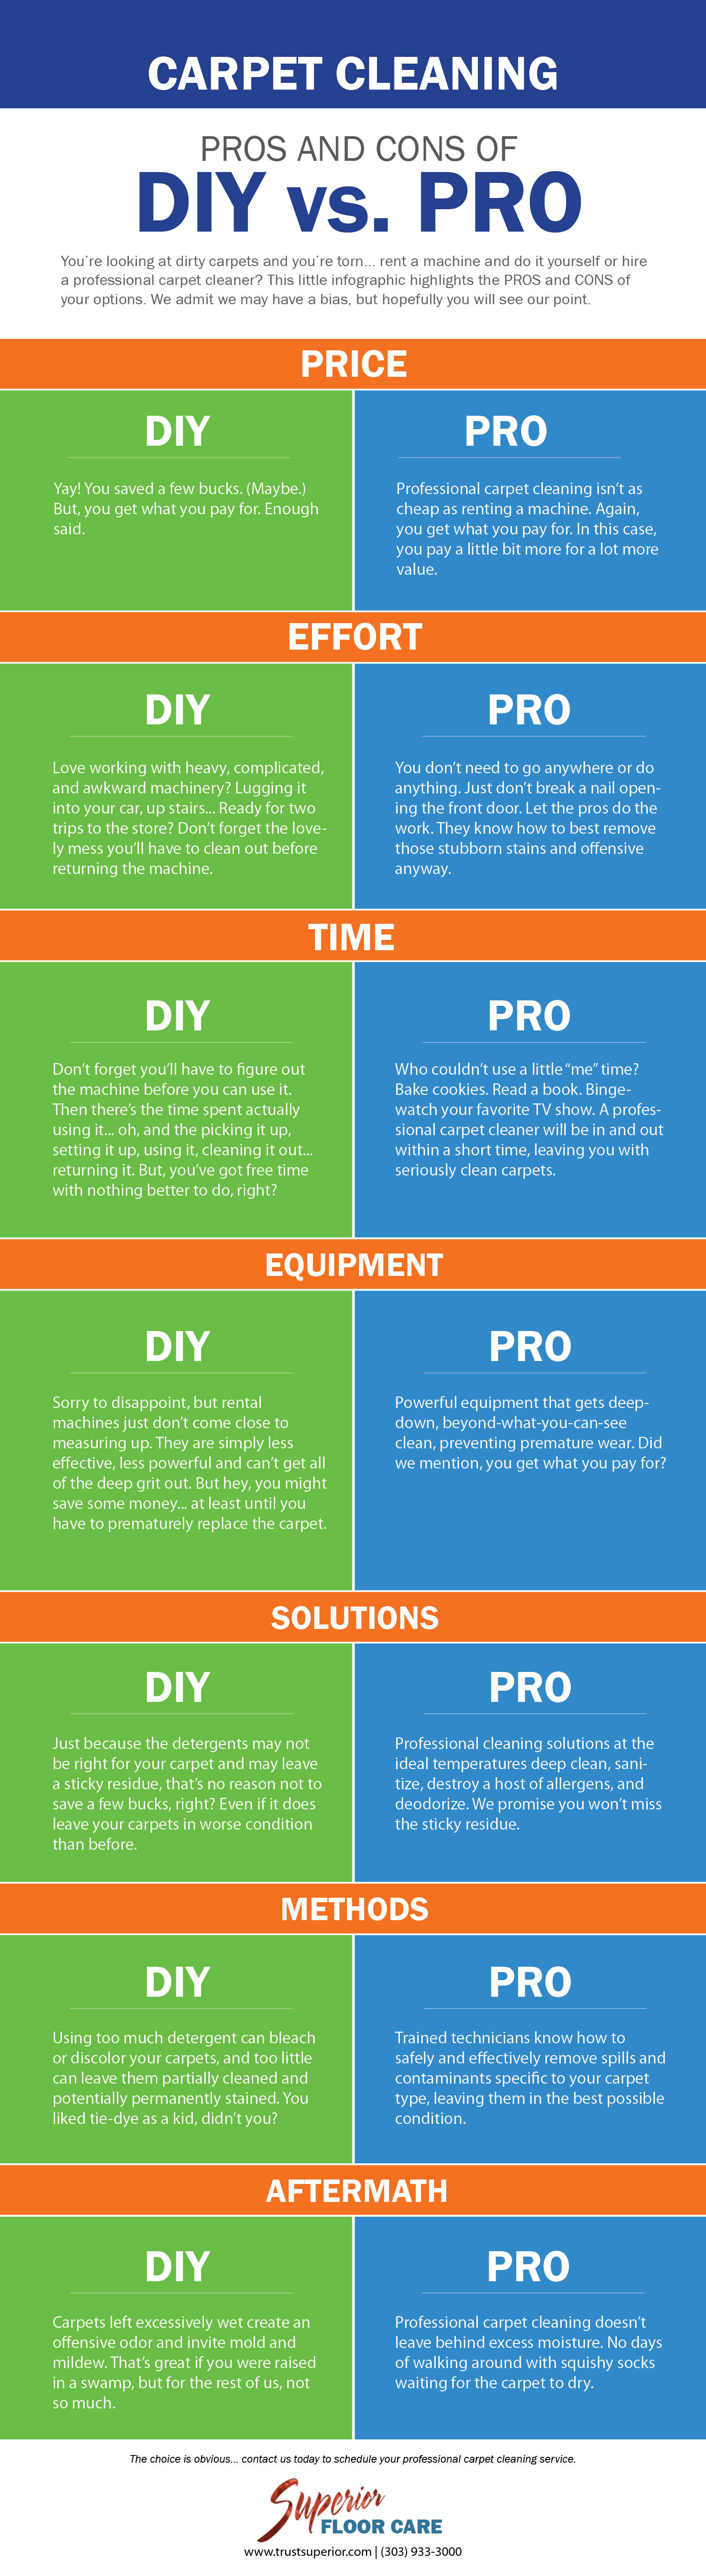 Professional Carpet Cleaning vs Renting a Machine - Infographic